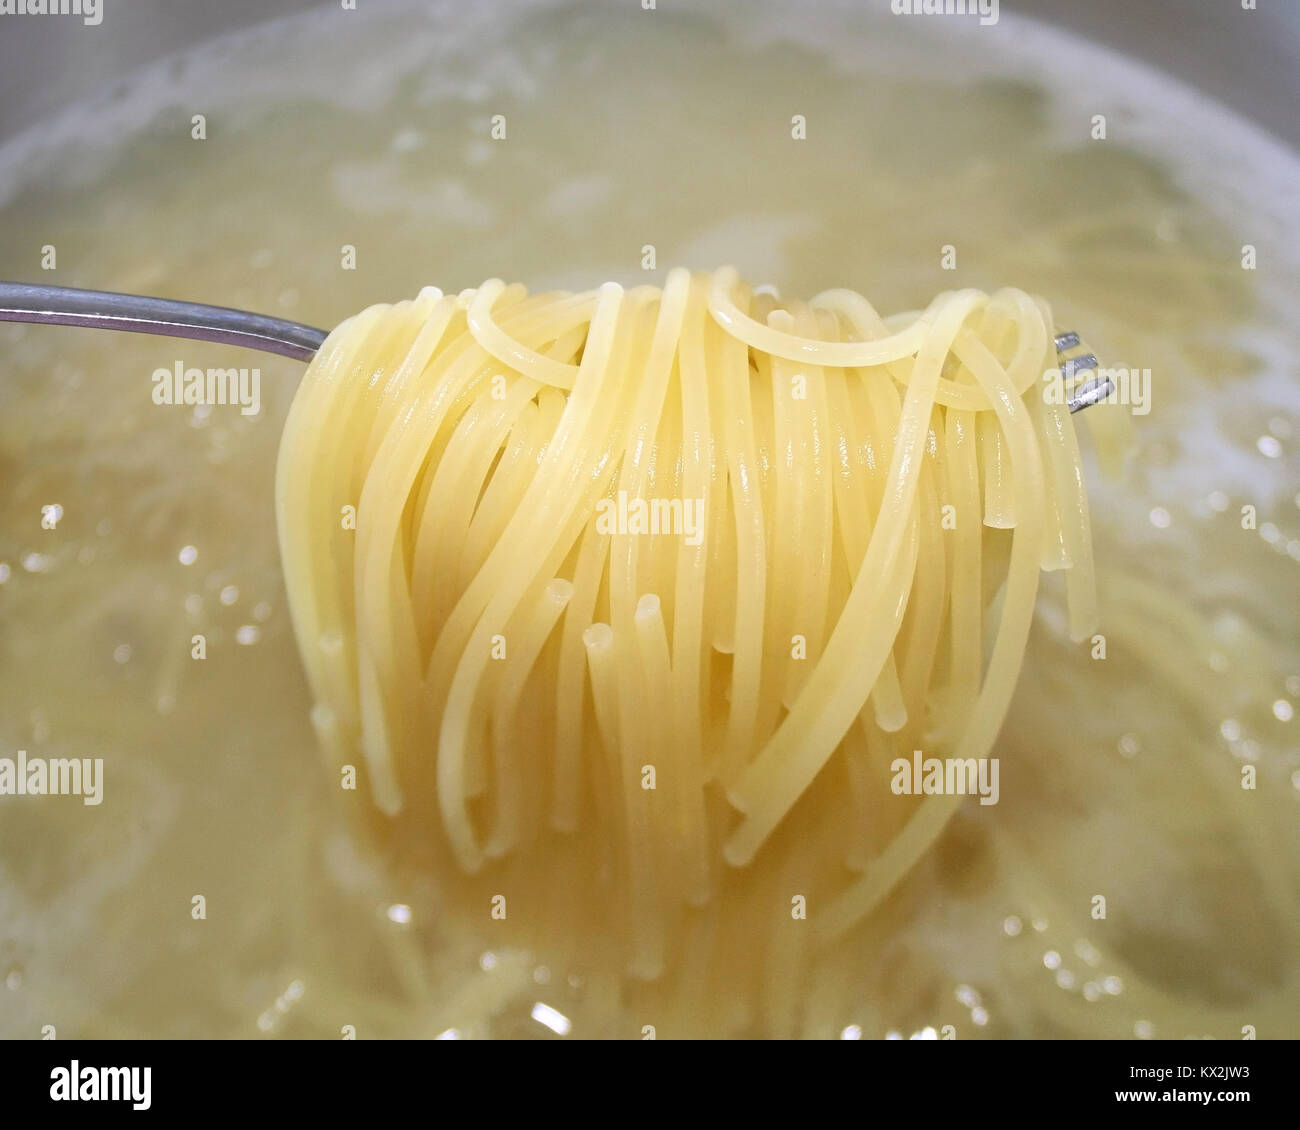 Cooked pasta noodles being lifted out of pot of boiling water with fork - Stock Image